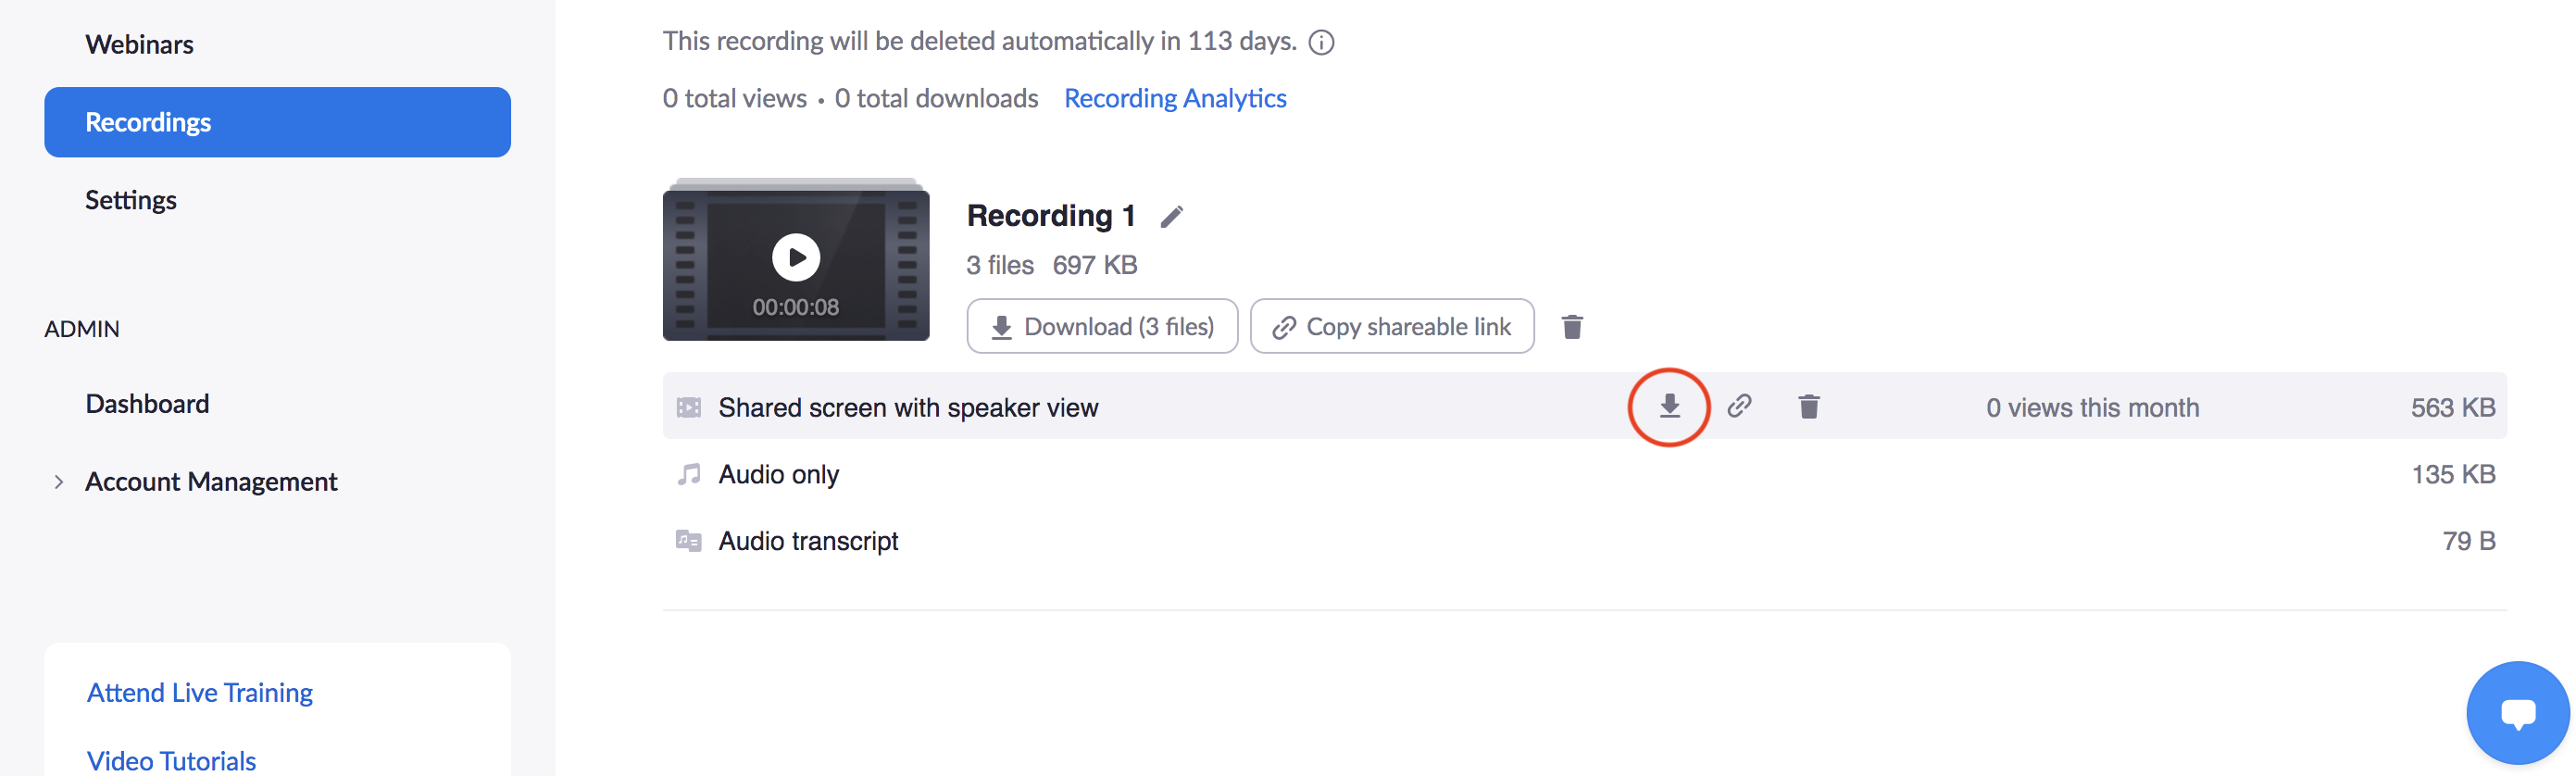 Recordings page showing circled Download icon